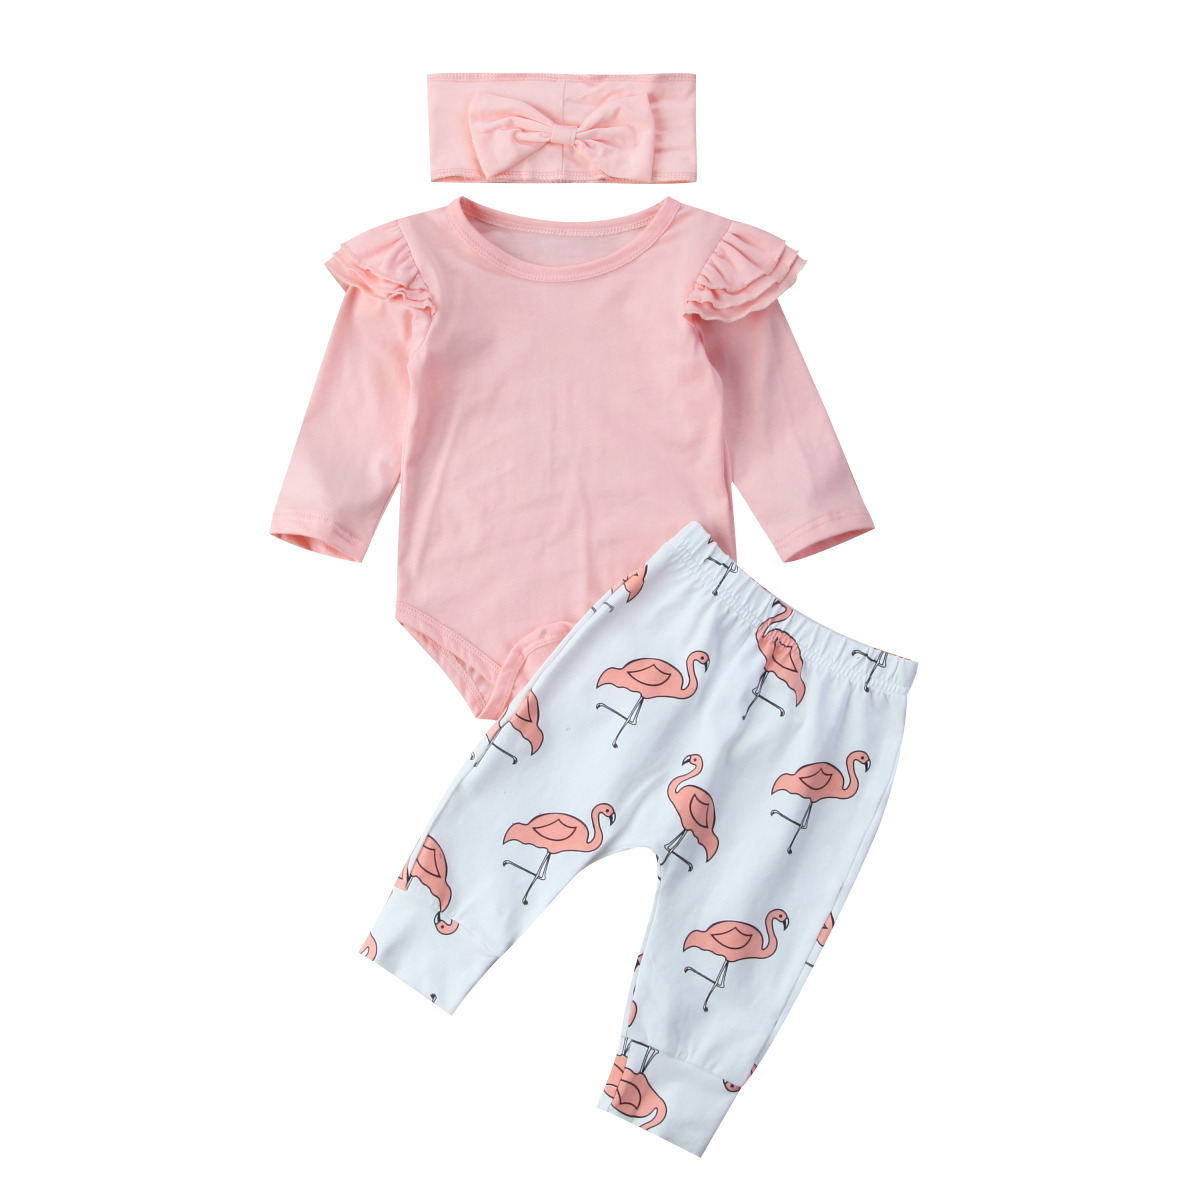 3Pcs Newborn Baby Girl Clothes Long Fly Sleeve Romper Flamingos Print Pants Headband Outfits Set Spring Summer New 0-24M